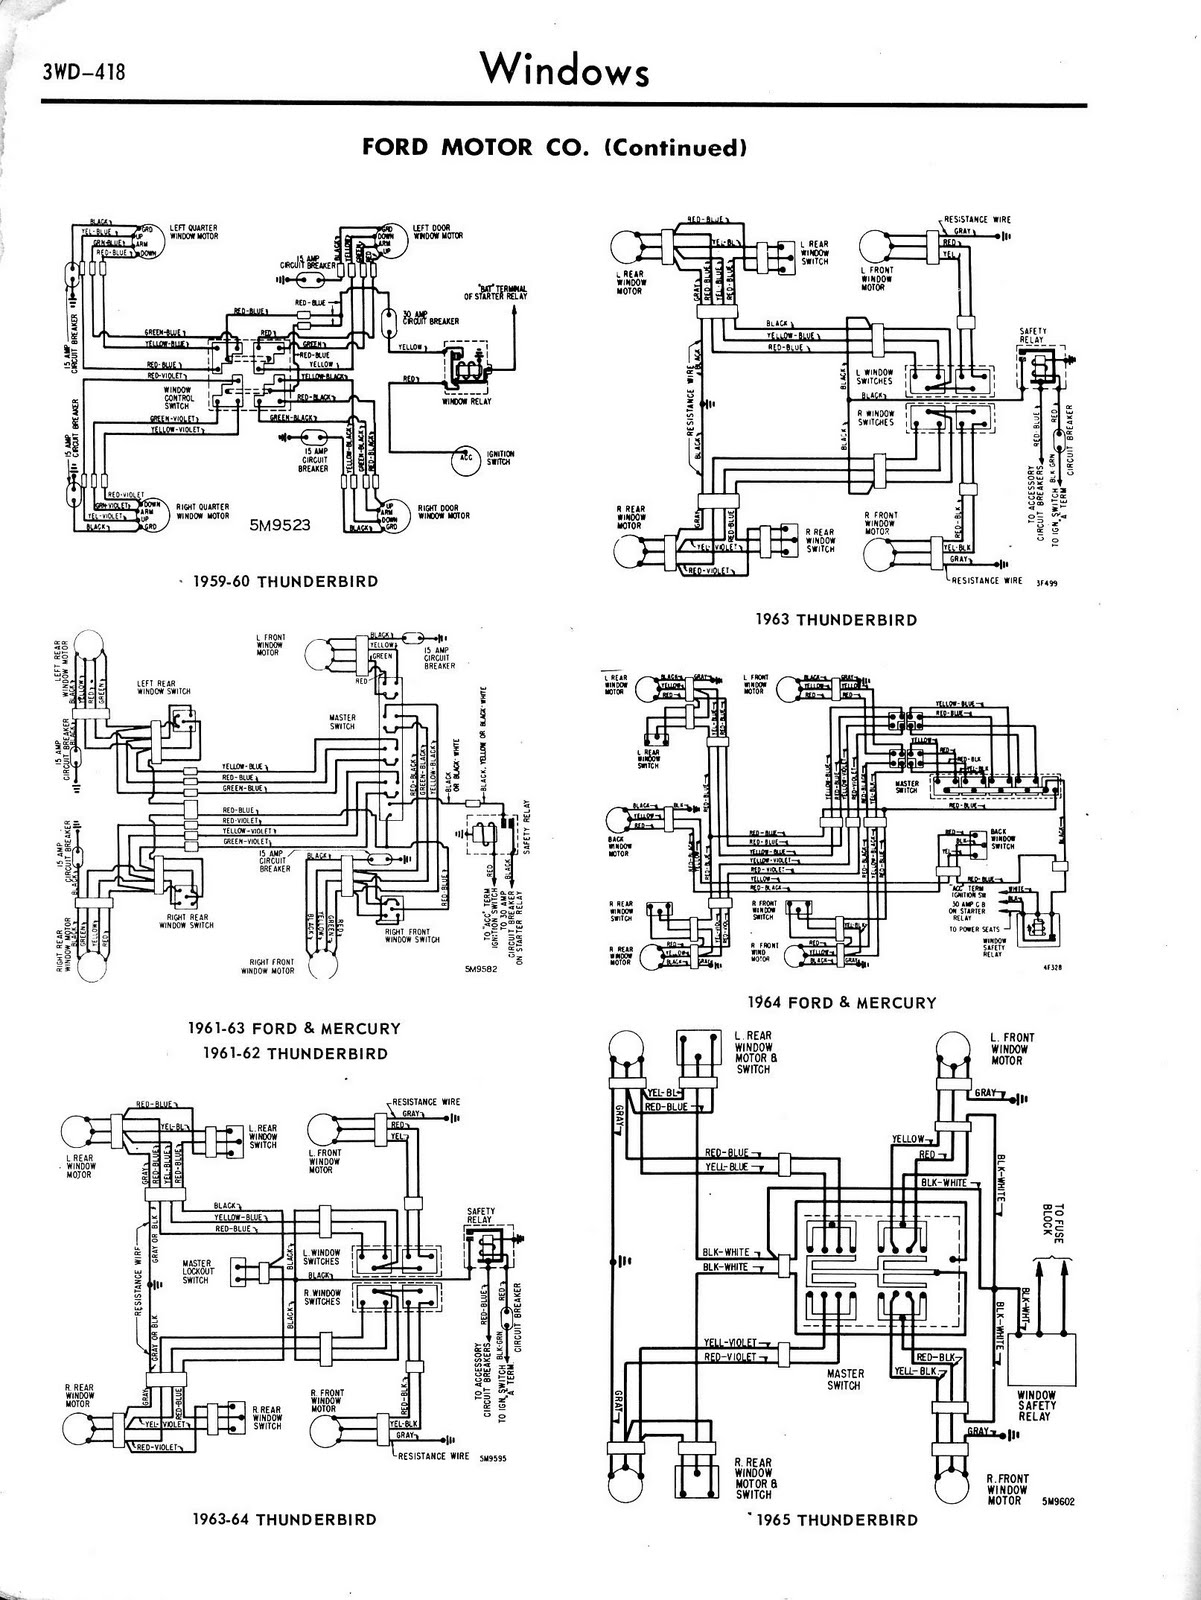 1969 Ford Mustang Ignition Switch Wiring Diagram Blank Of Feet Free Auto Diagram: 1965 Thunderbird Window Controls